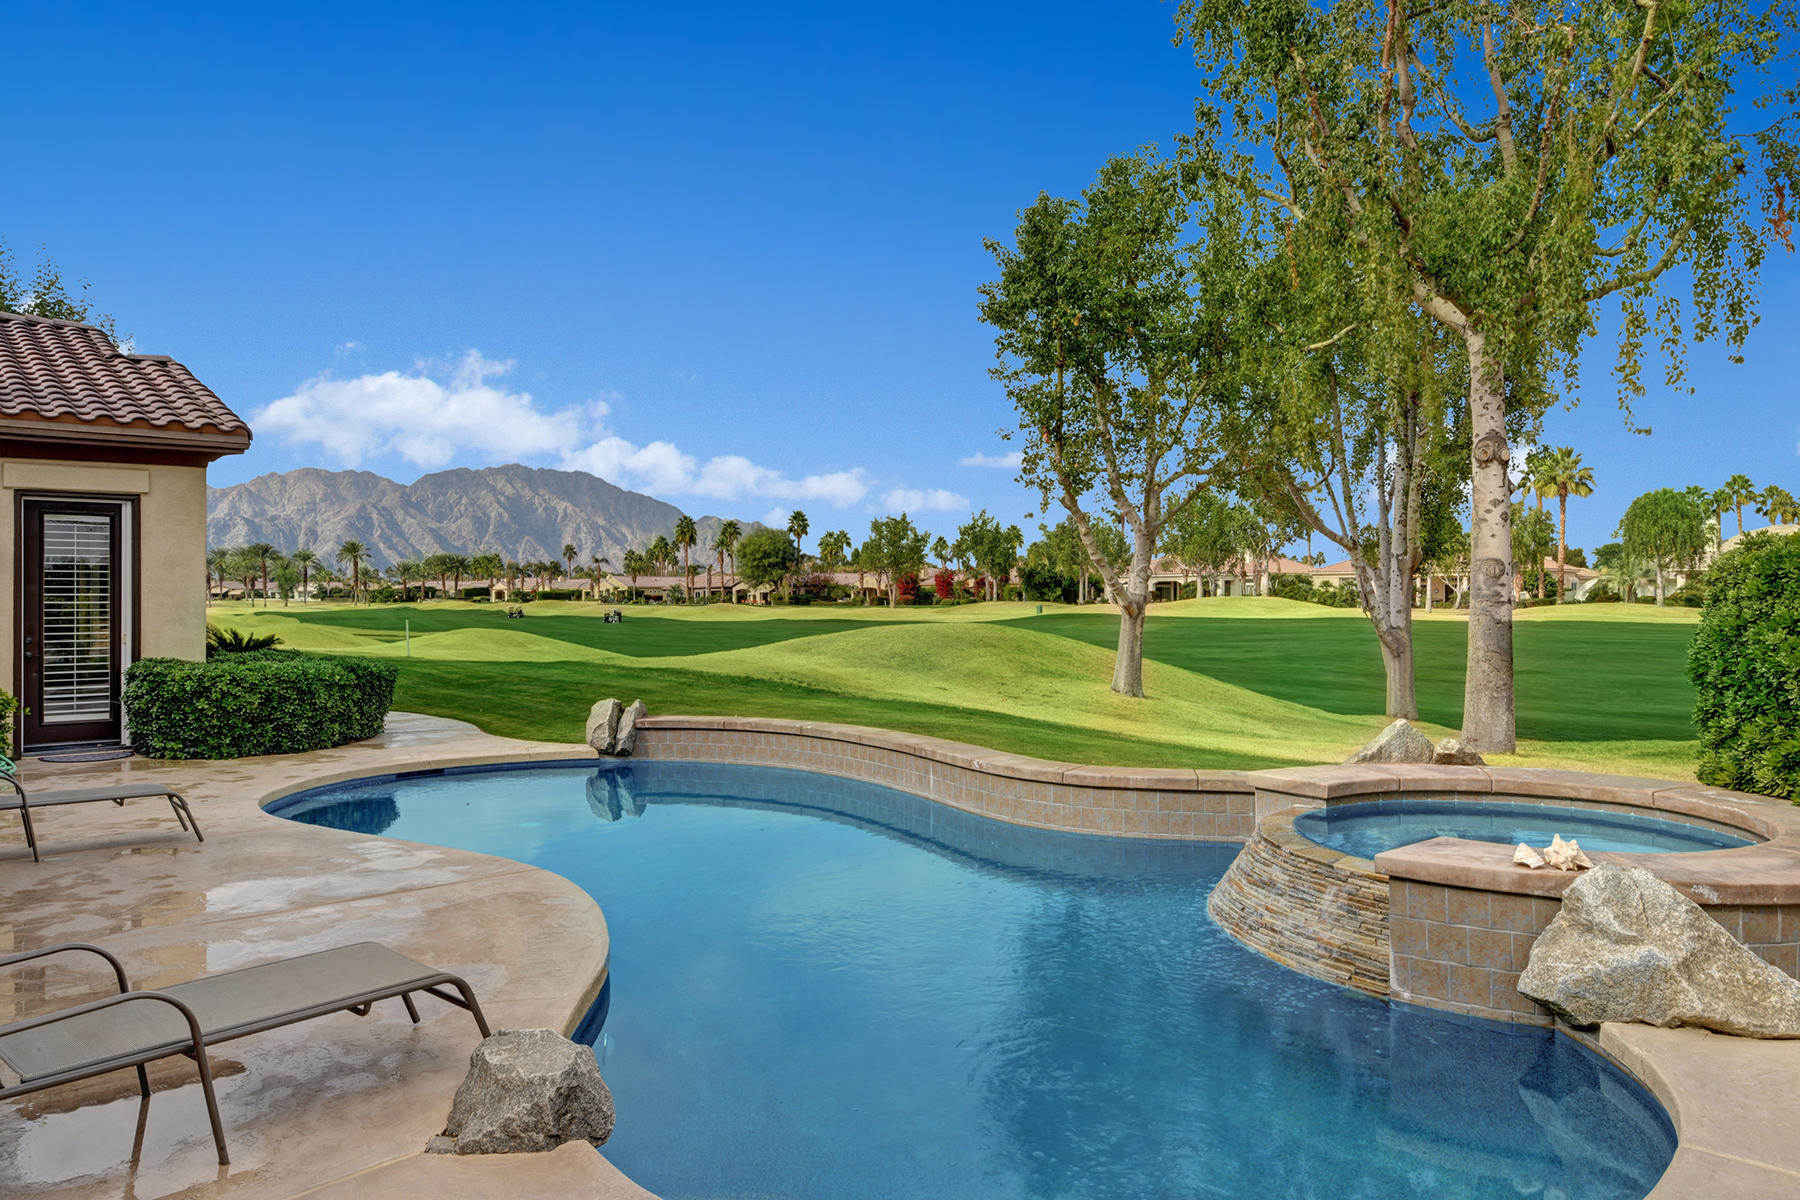 81310 Golf View Drive, La Quinta, California 92253, 4 Bedrooms Bedrooms, ,5 BathroomsBathrooms,Residential,For Sale,81310 Golf View Drive,219043601